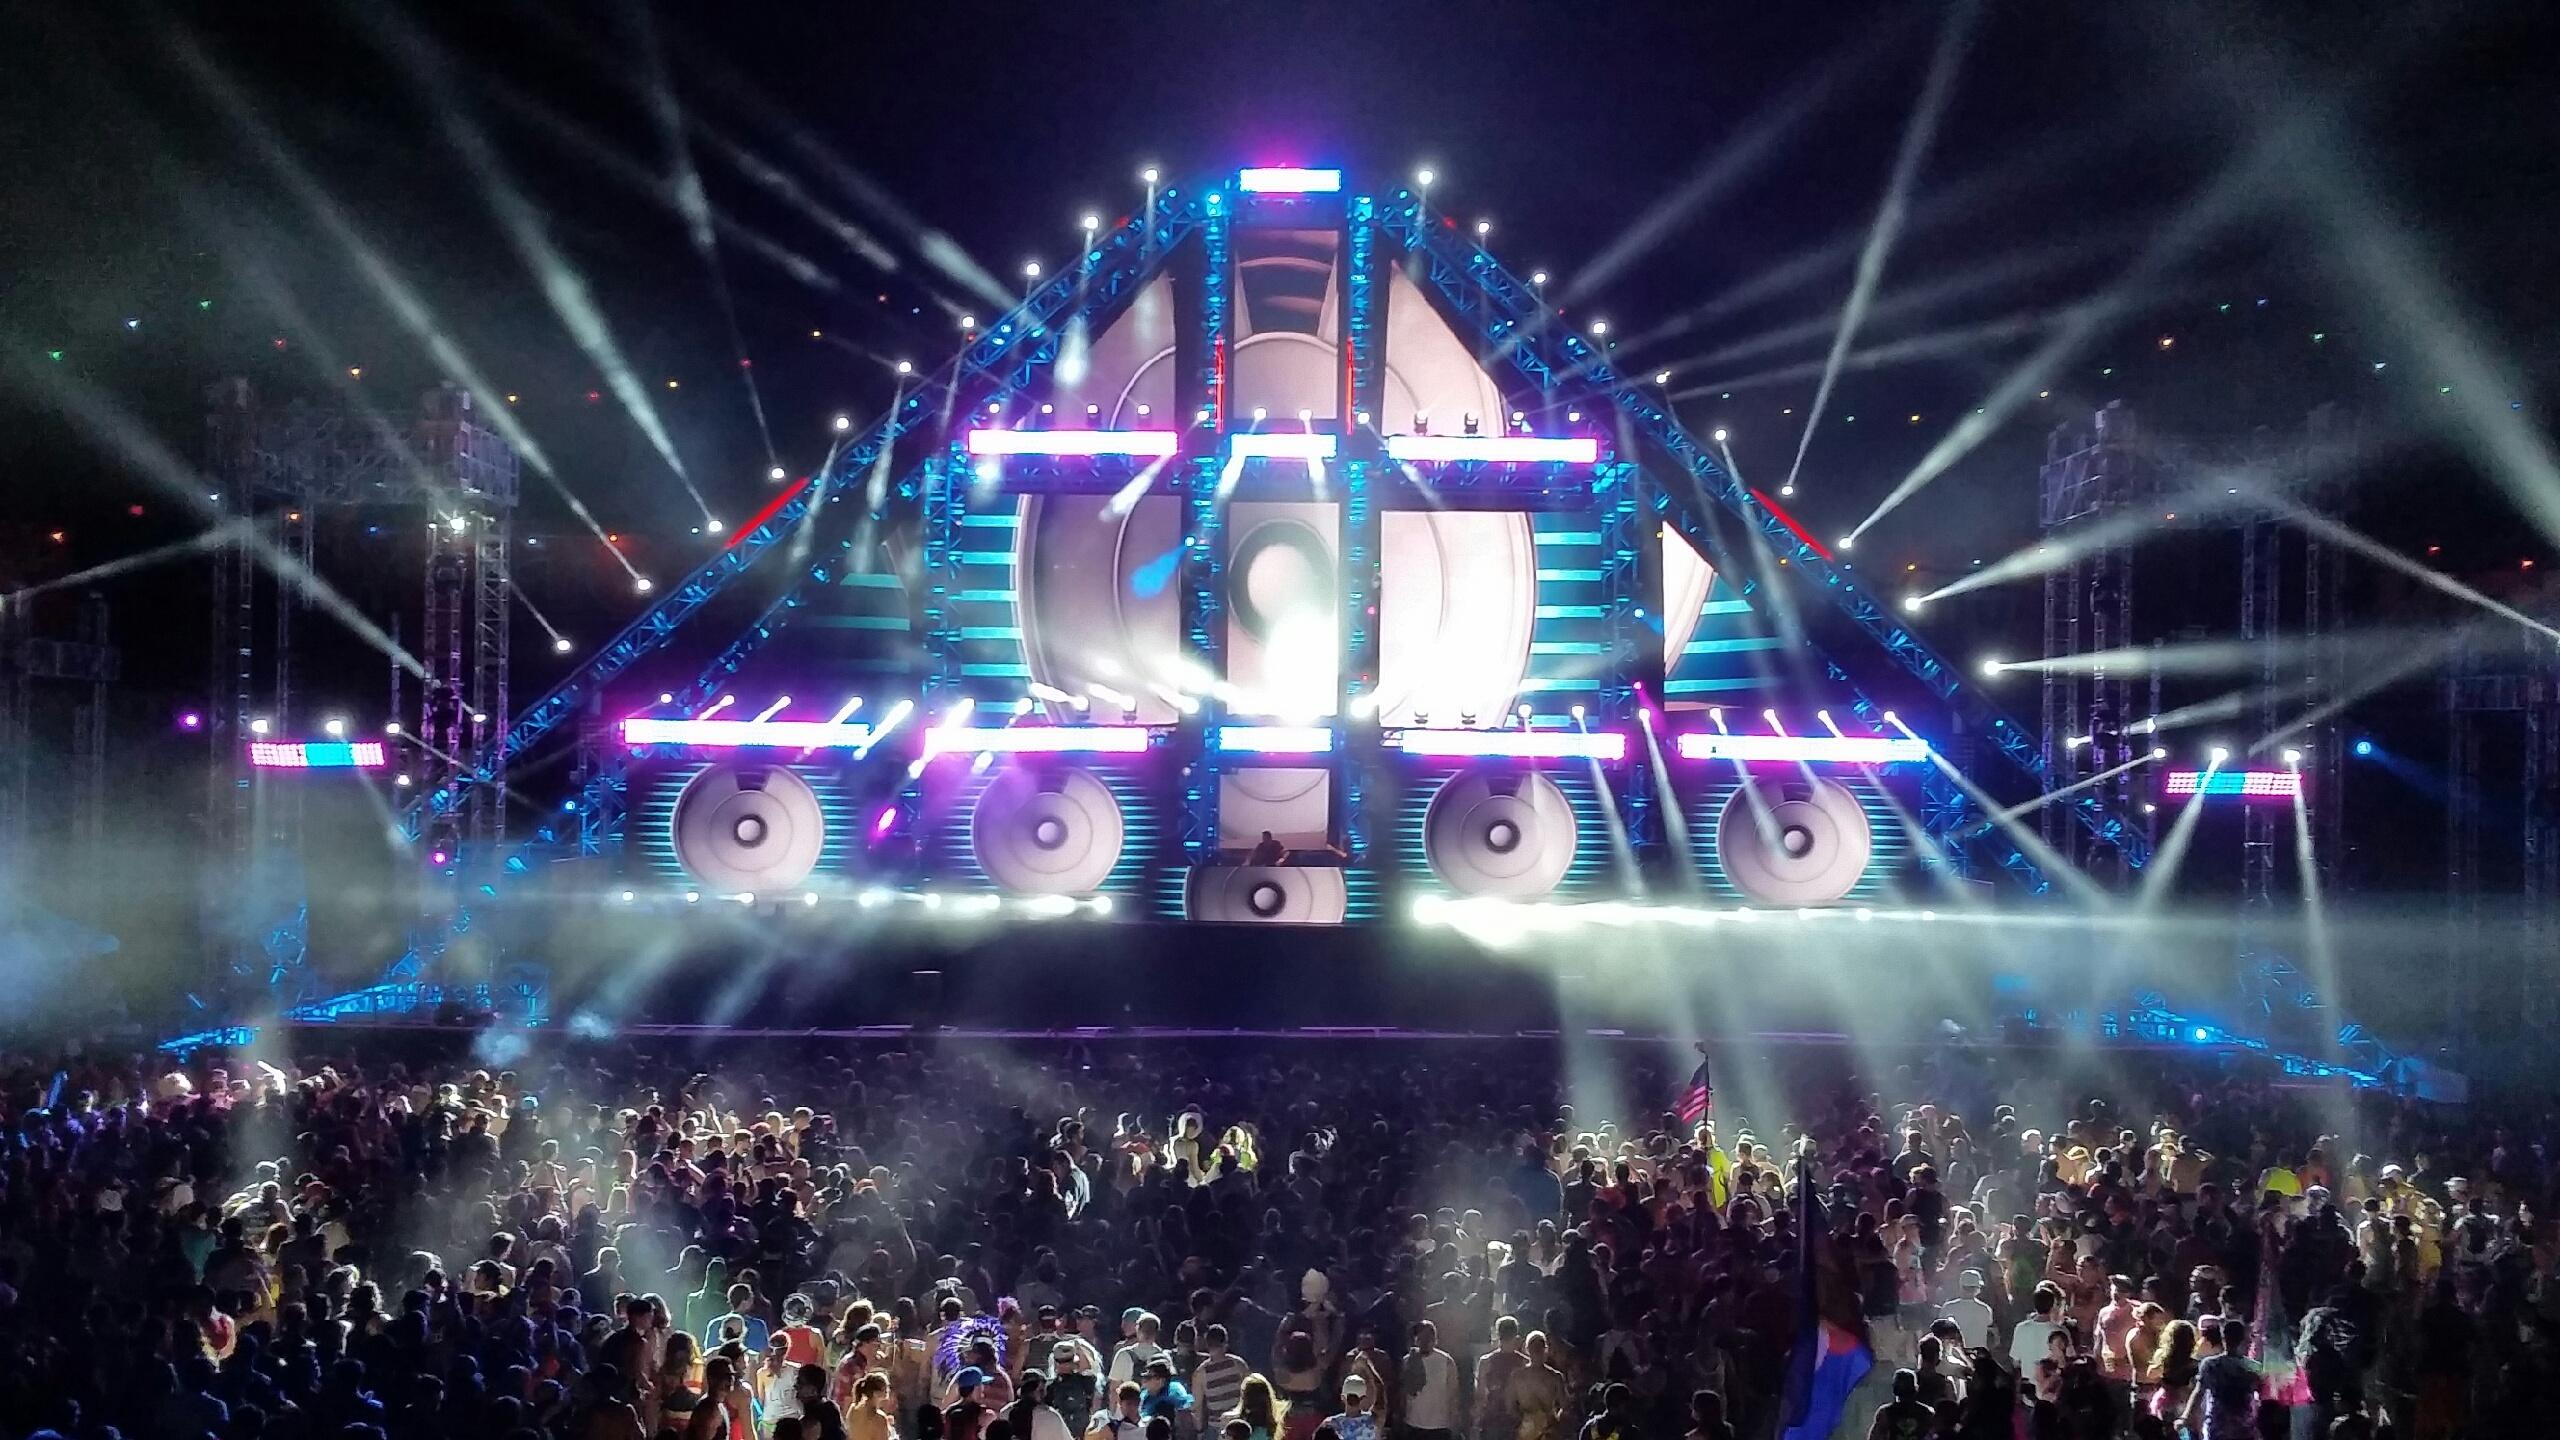 Chauvet Showcases Nexus At Edc S Basspod Stage